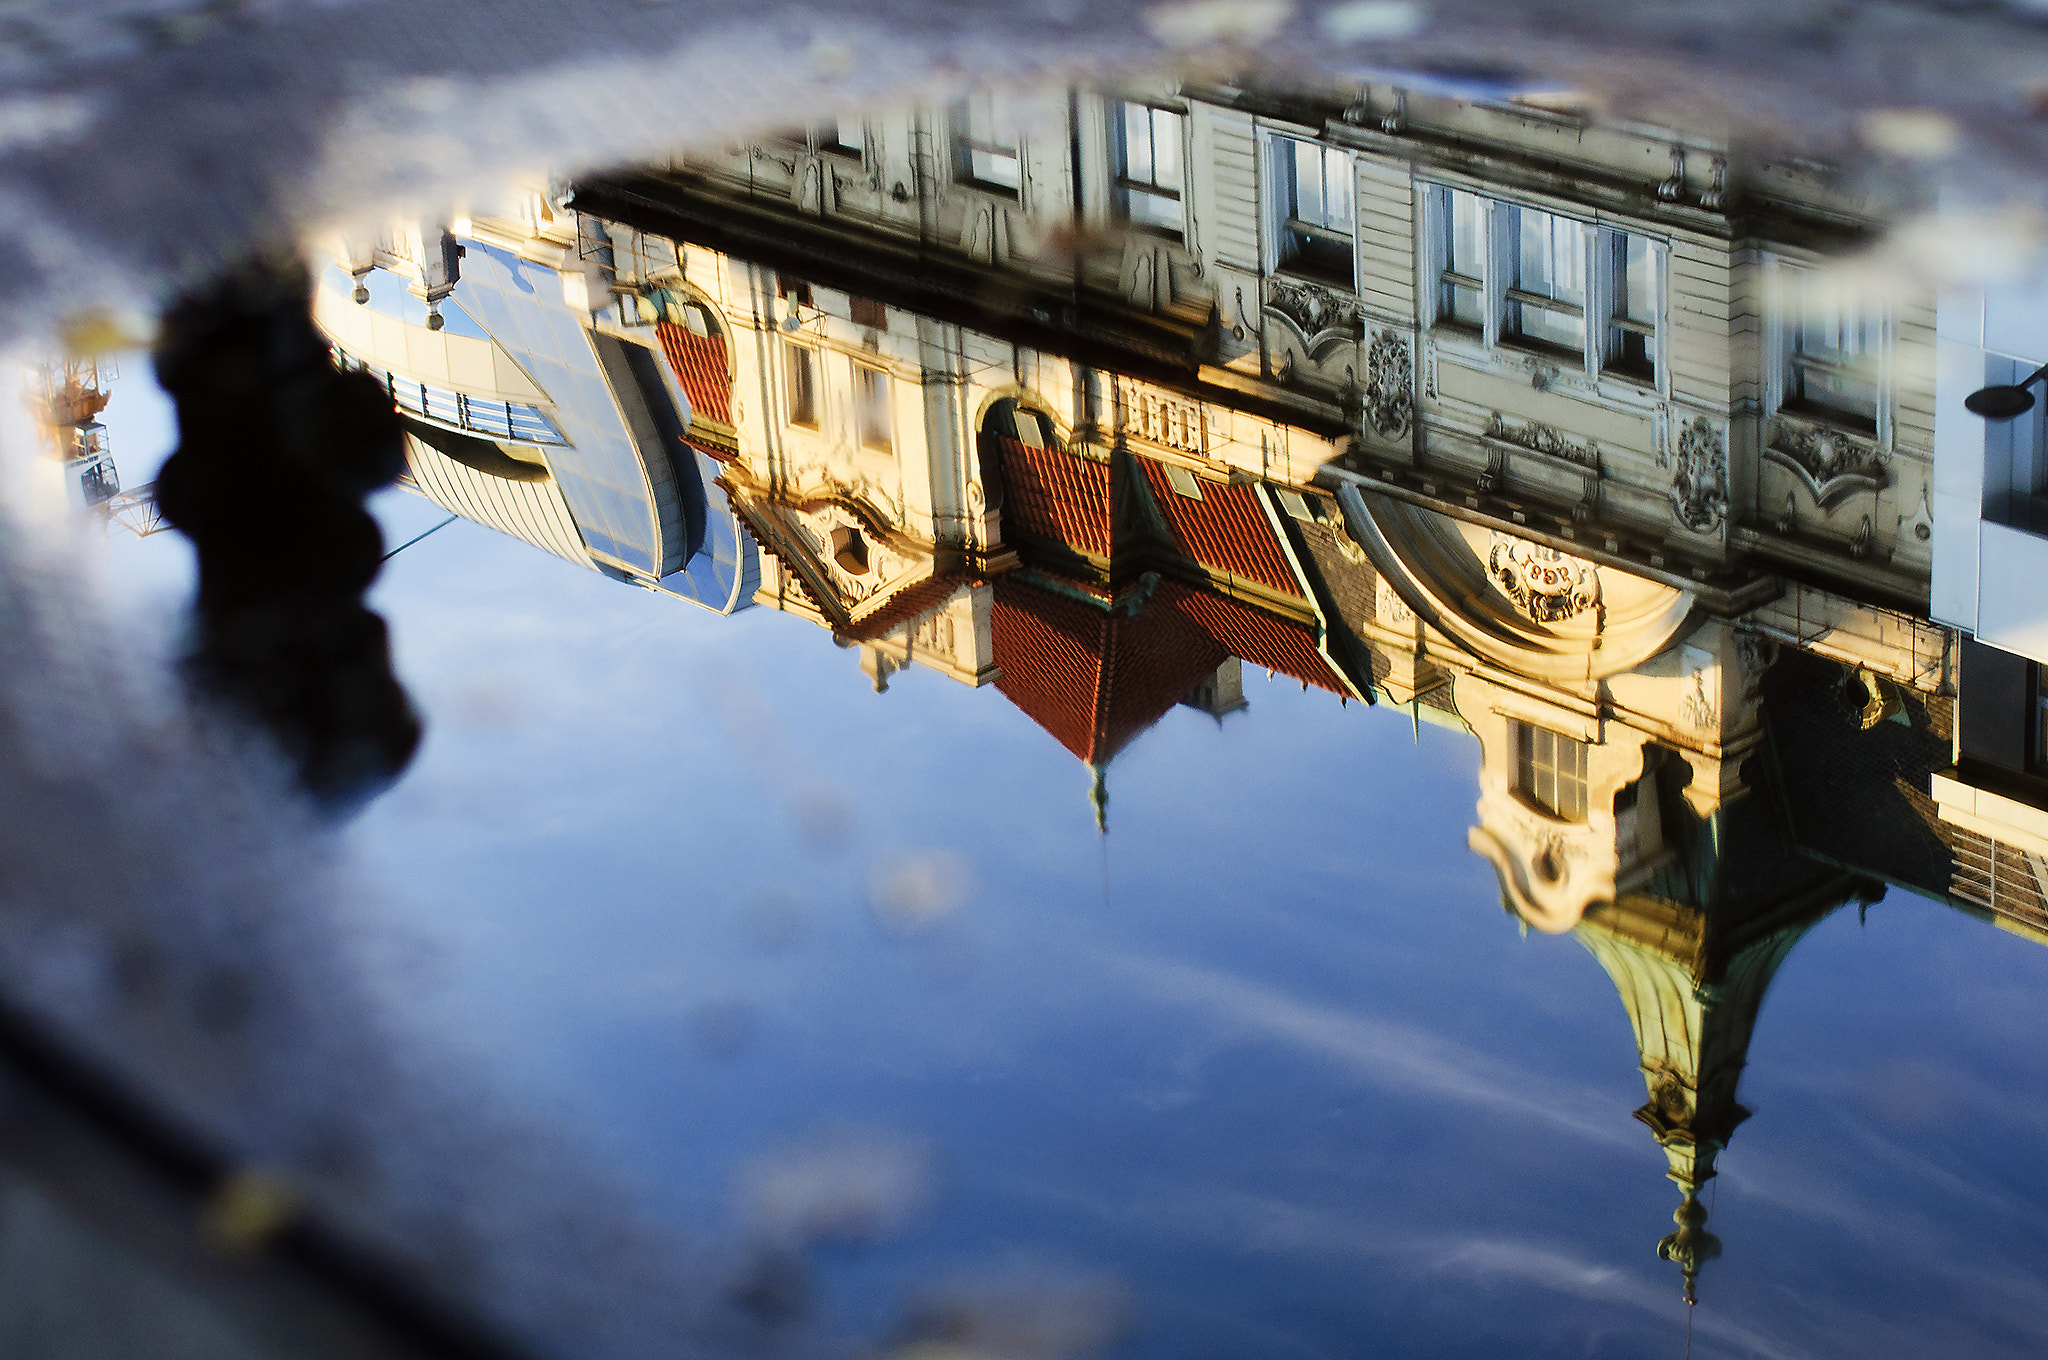 Photograph praha in the mirror by Alessandro Galloni on 500px